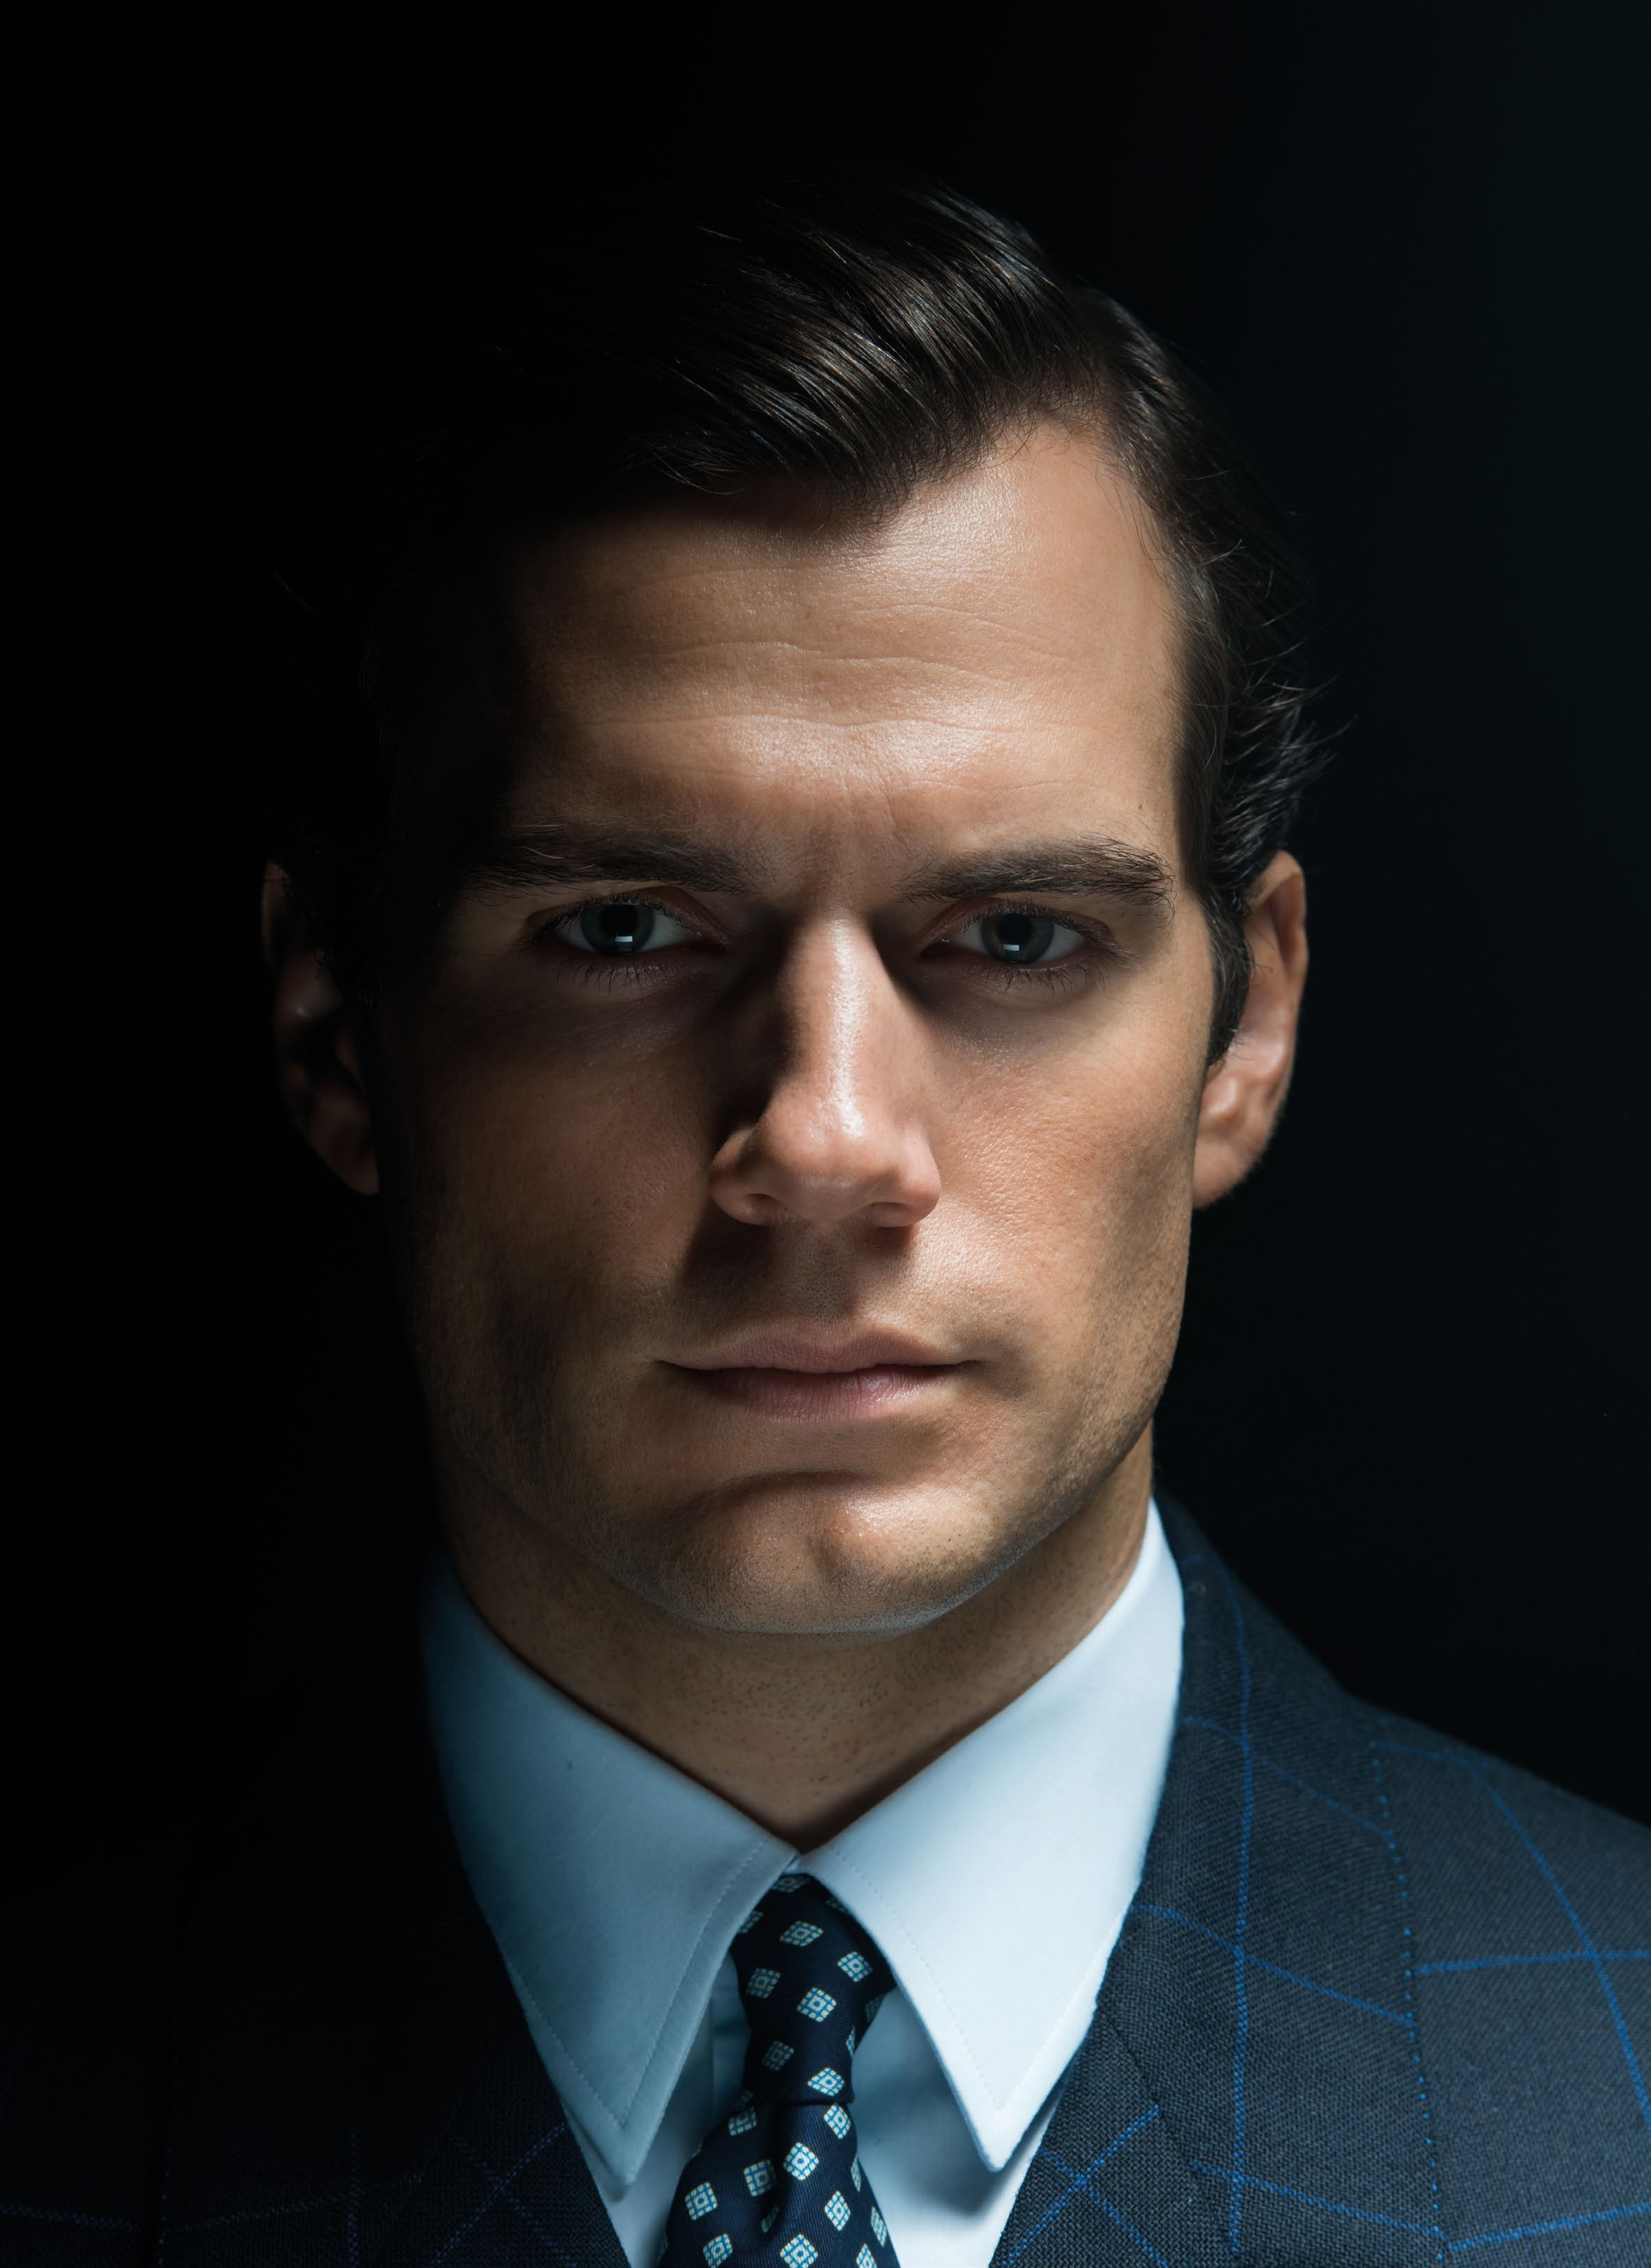 Henry Cavill Backgrounds on Wallpapers Vista